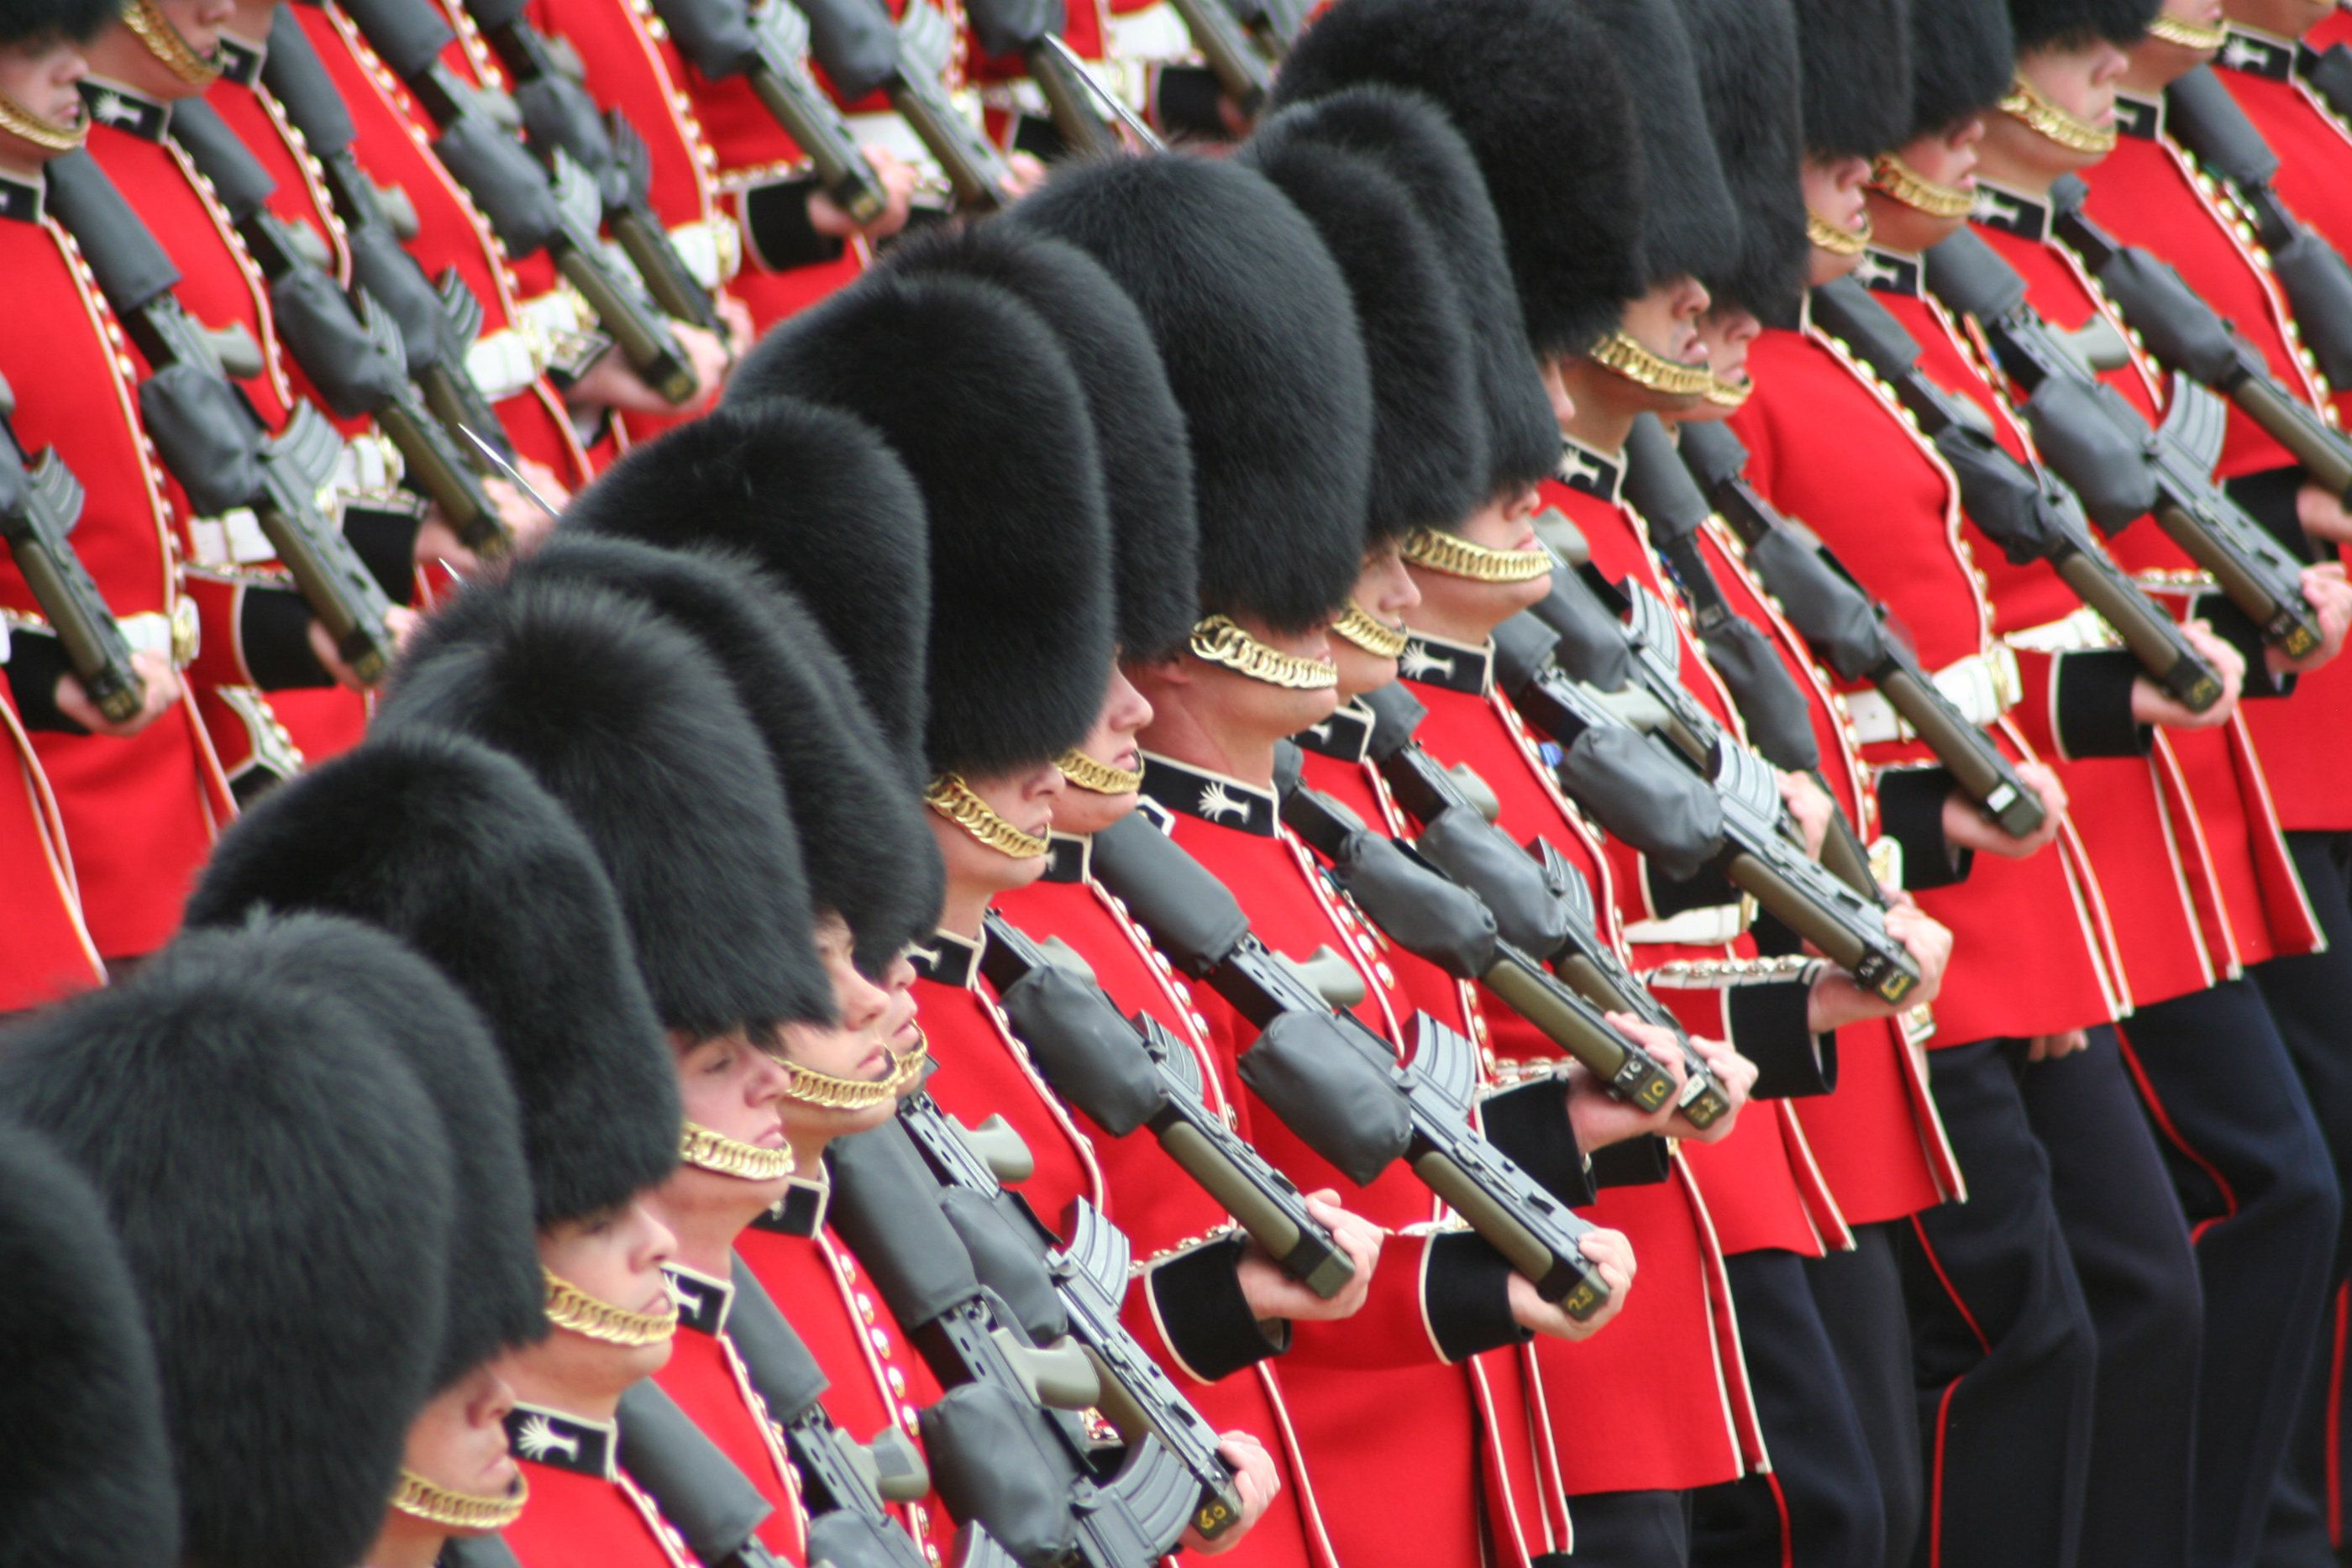 Soldiers_Trooping_the_Colour,_16th_June_2007